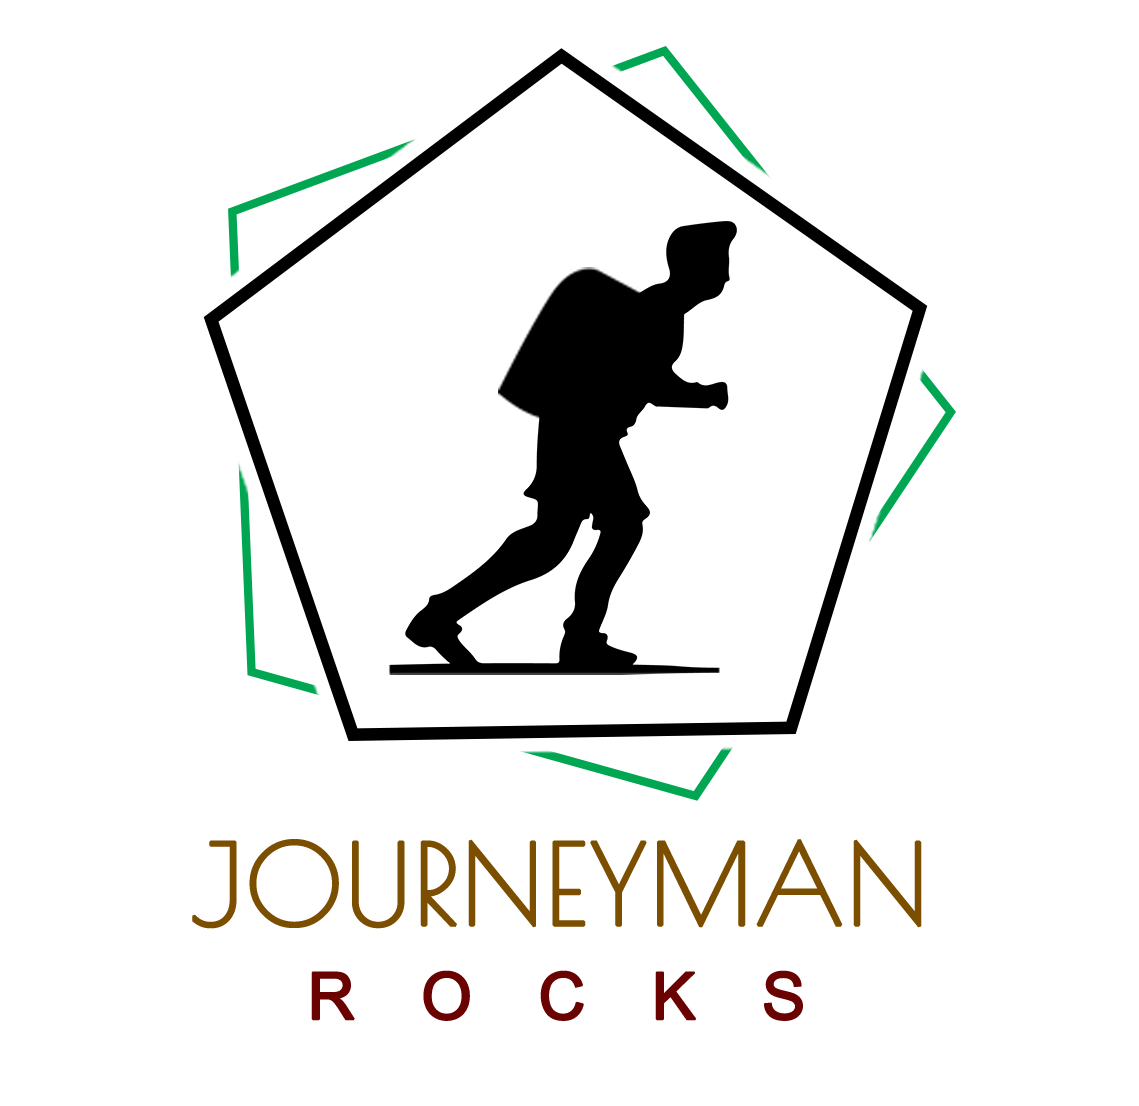 JourneyManRocks